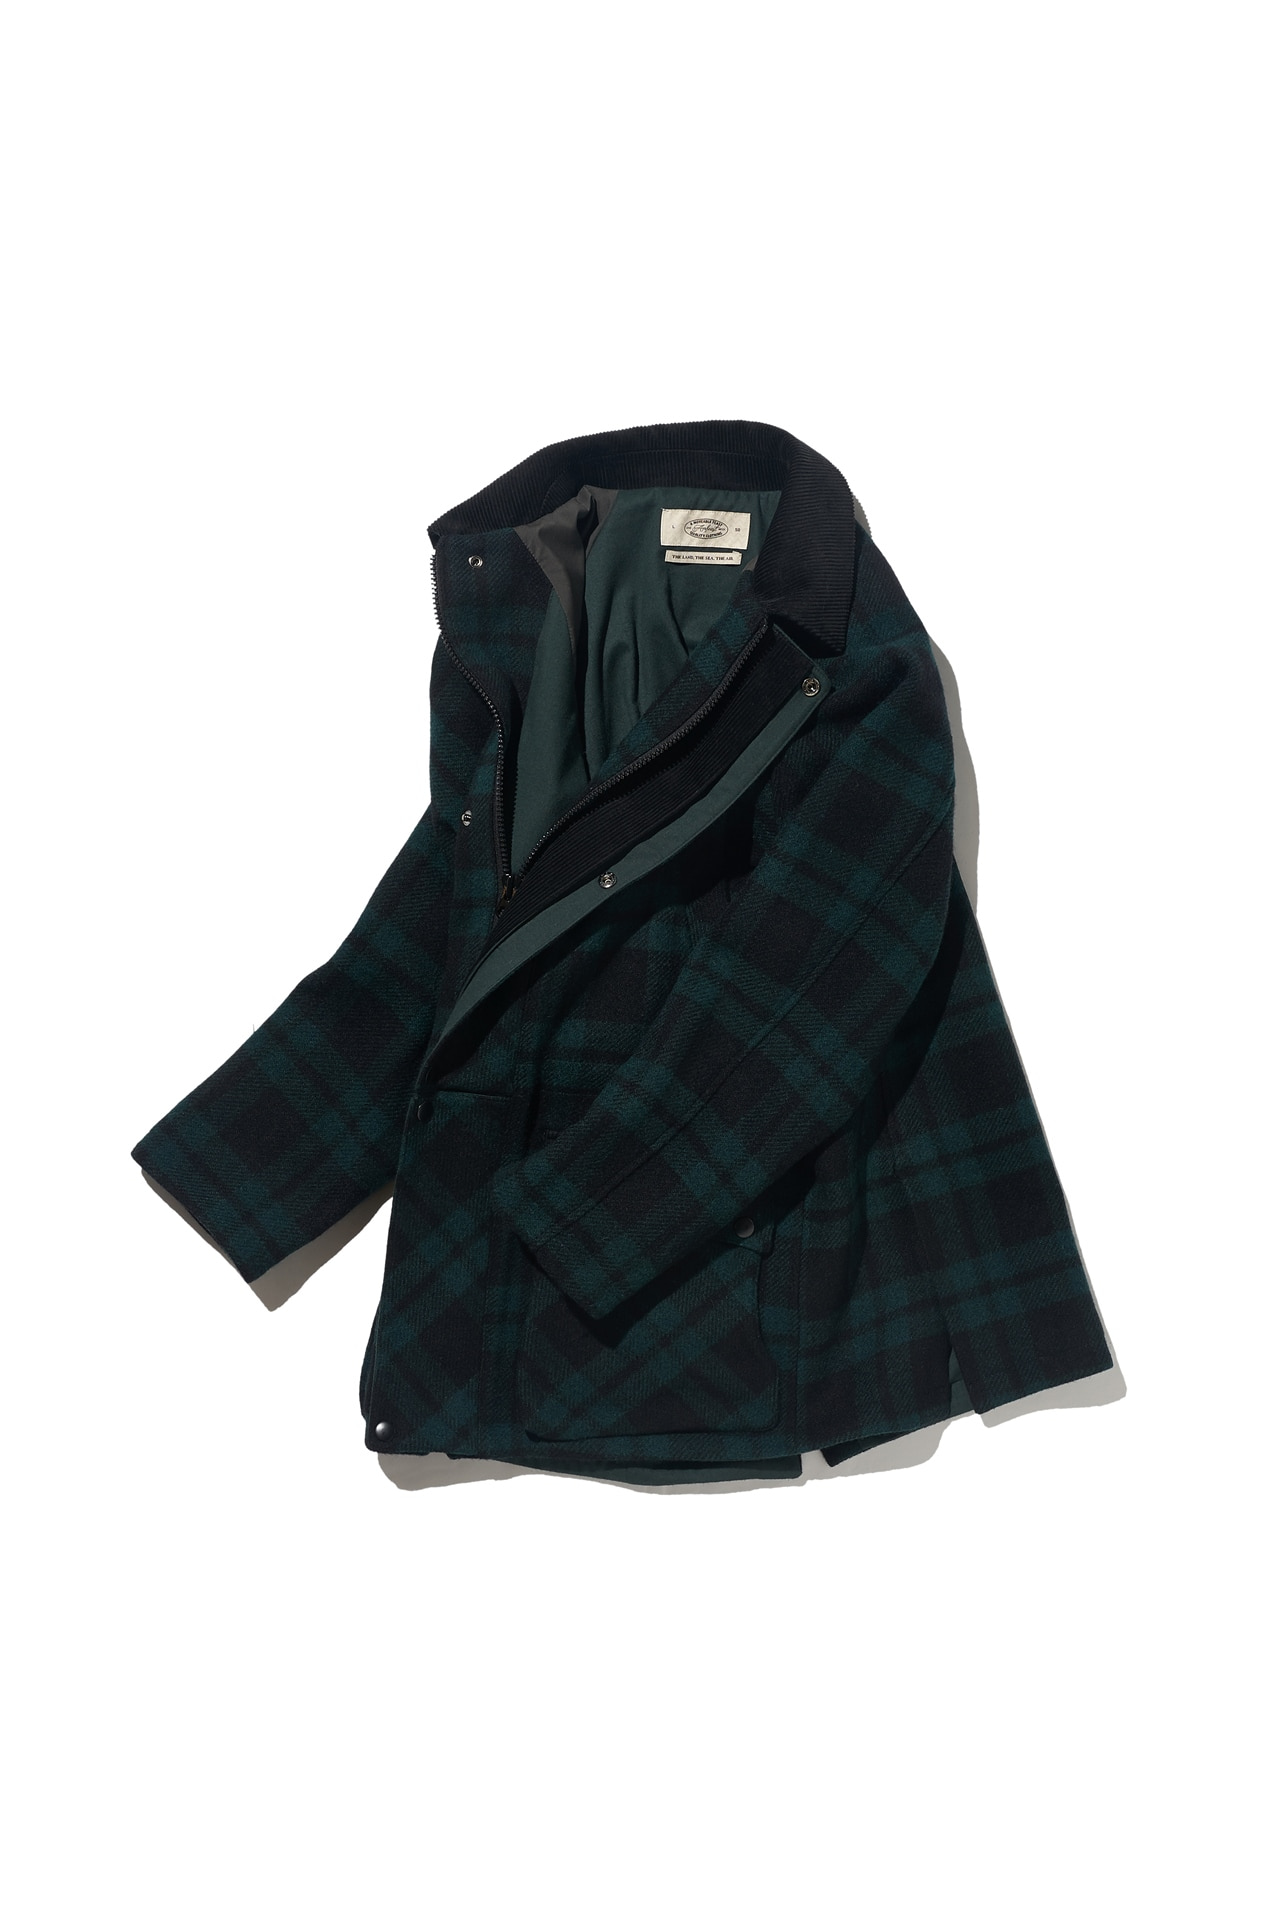 [Amfeast] GREEN TARTAN SIGNATURE CITY HALF COAT